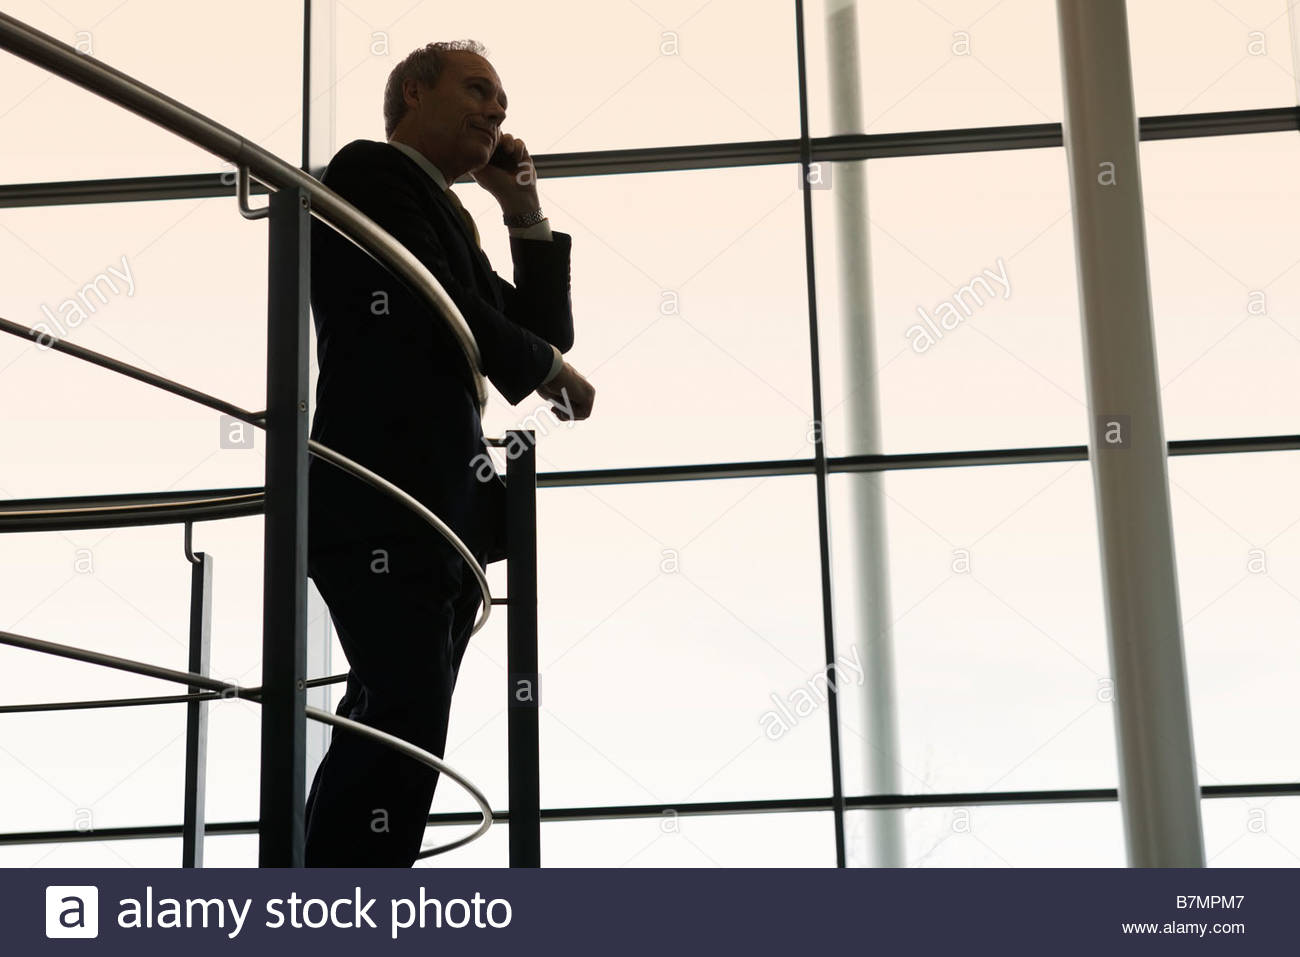 A businessman talking on a mobile phone in a modern office building Stock Photo